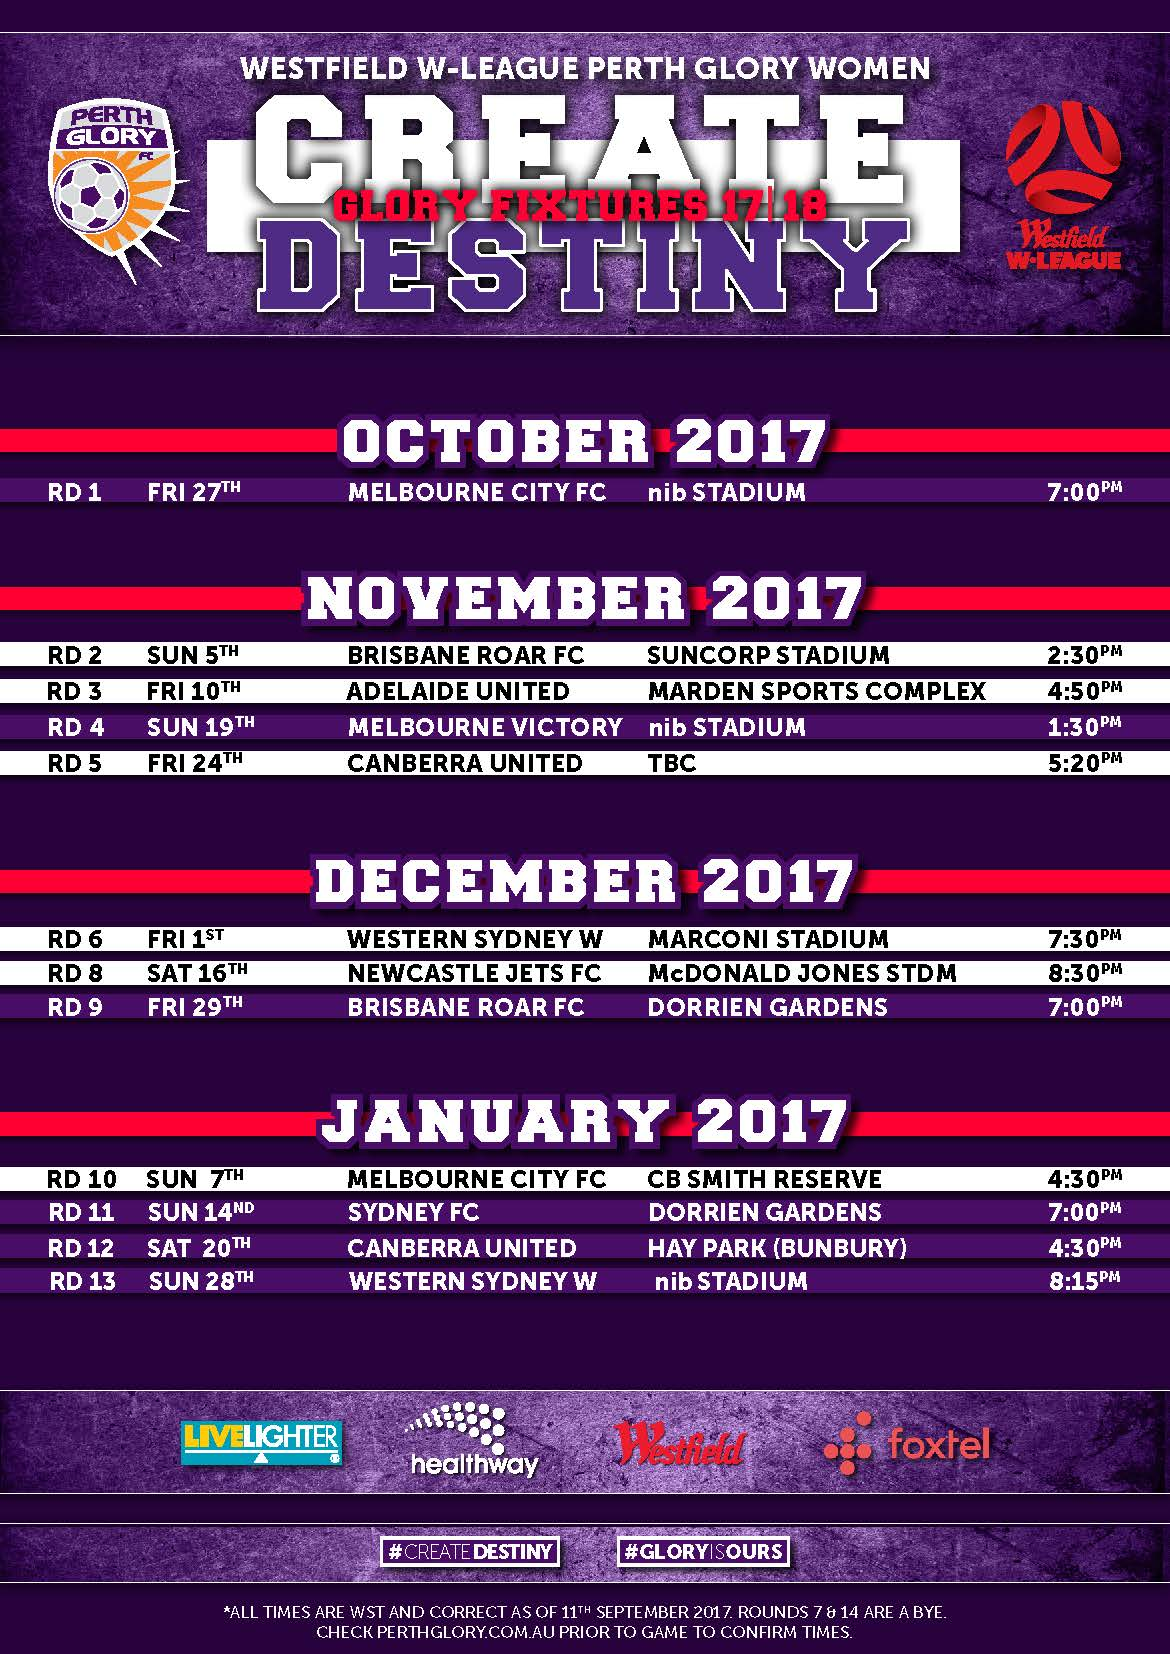 Perth Glory W-League Fixtures